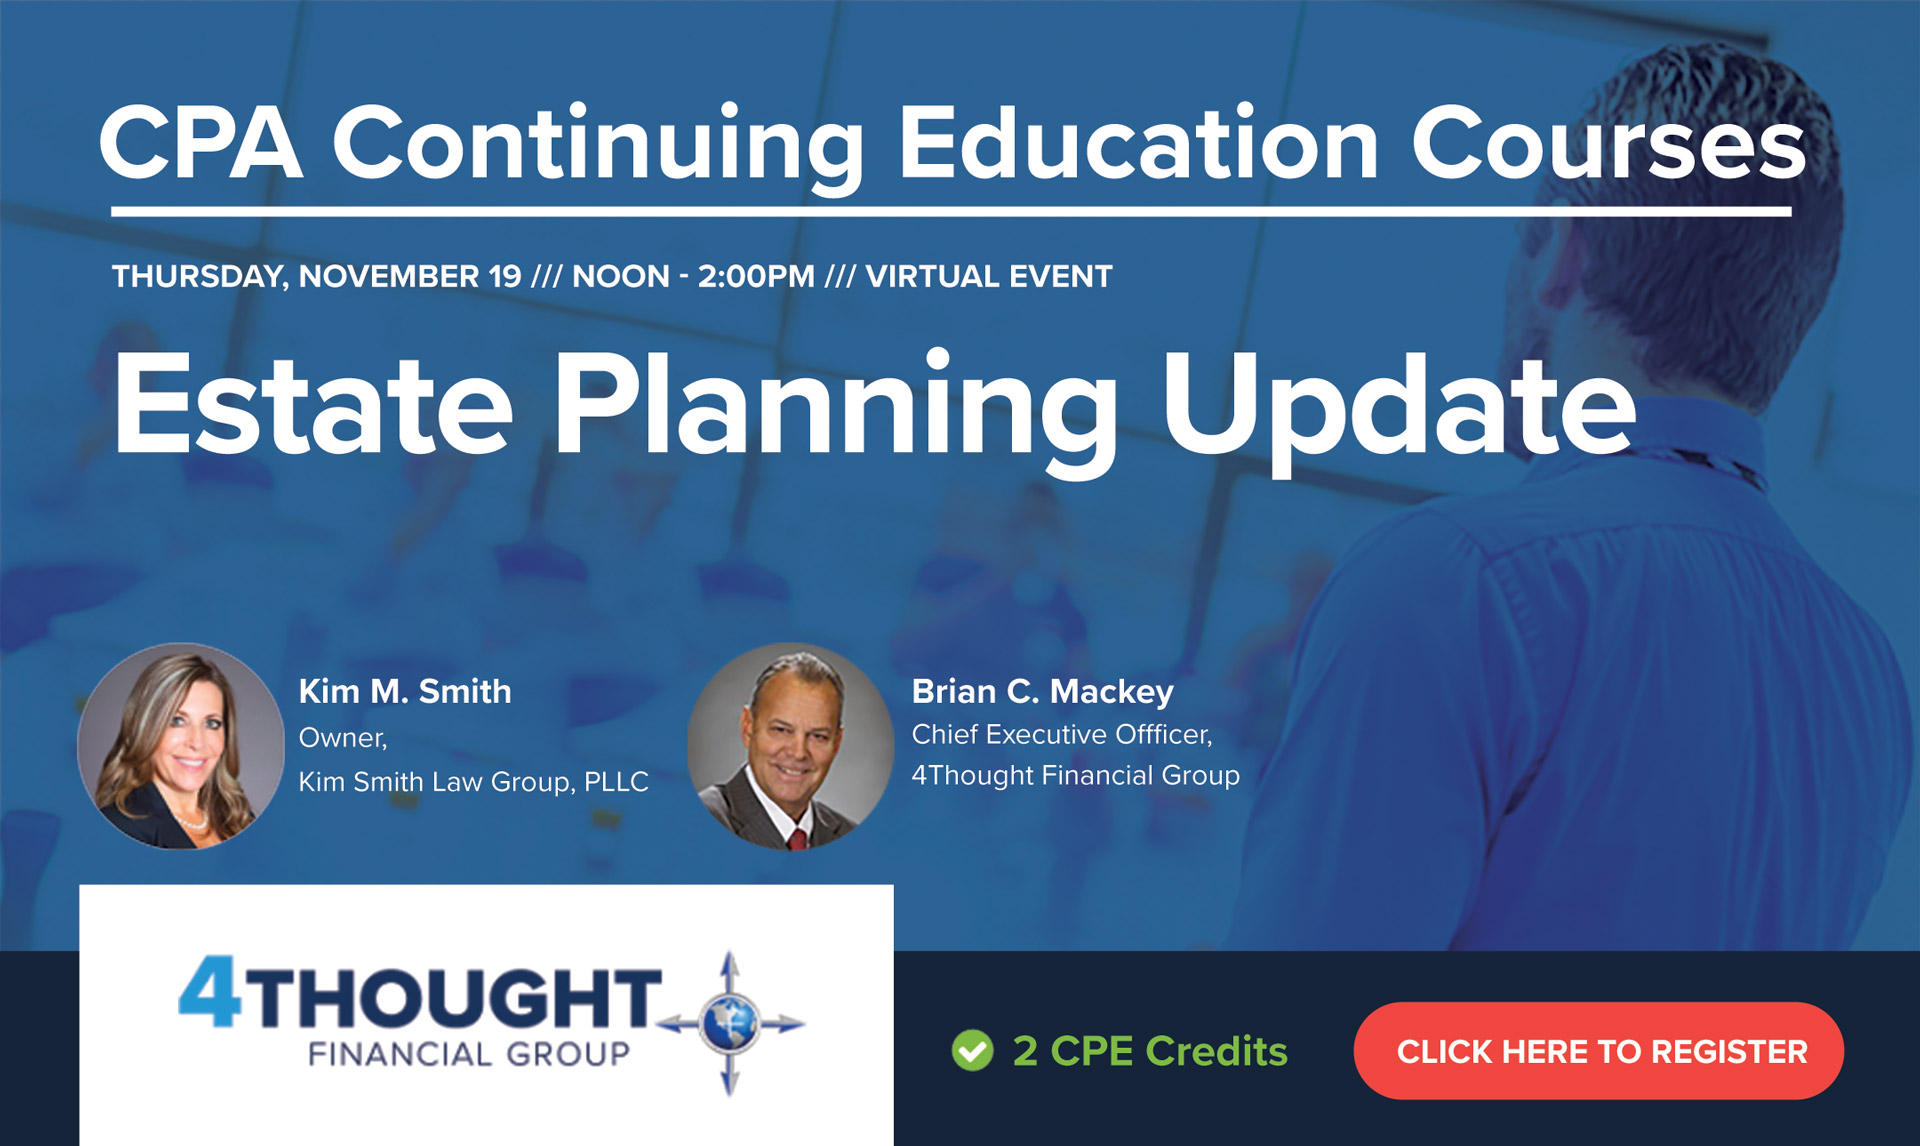 CPA Continuing Education Course: Business Continuity Case Study